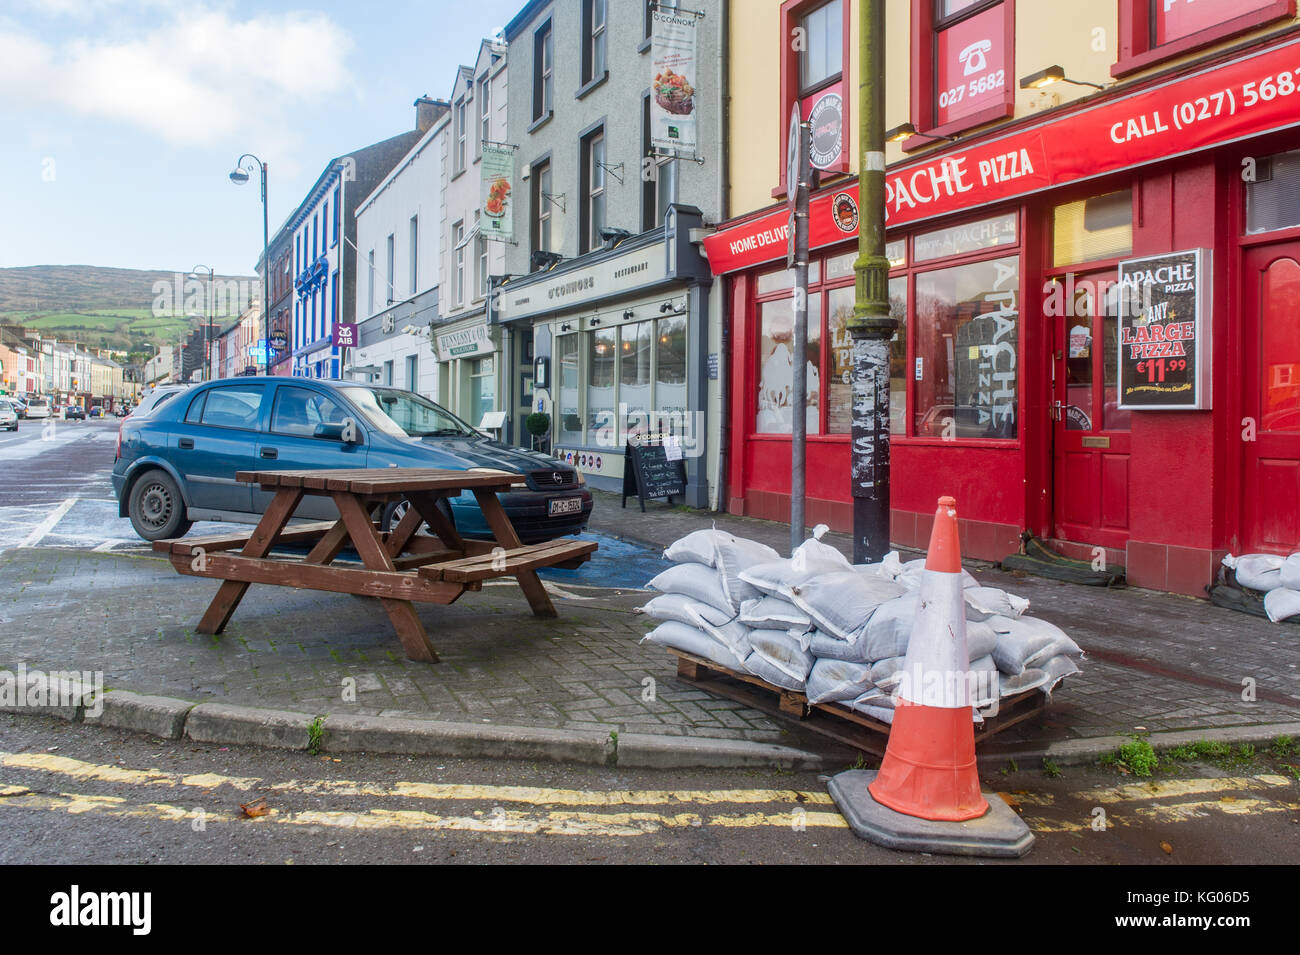 Sandbags on a pallet for shop owners to take in preparation for expected flooding in Bantry, West Cork, Ireland. - Stock Image